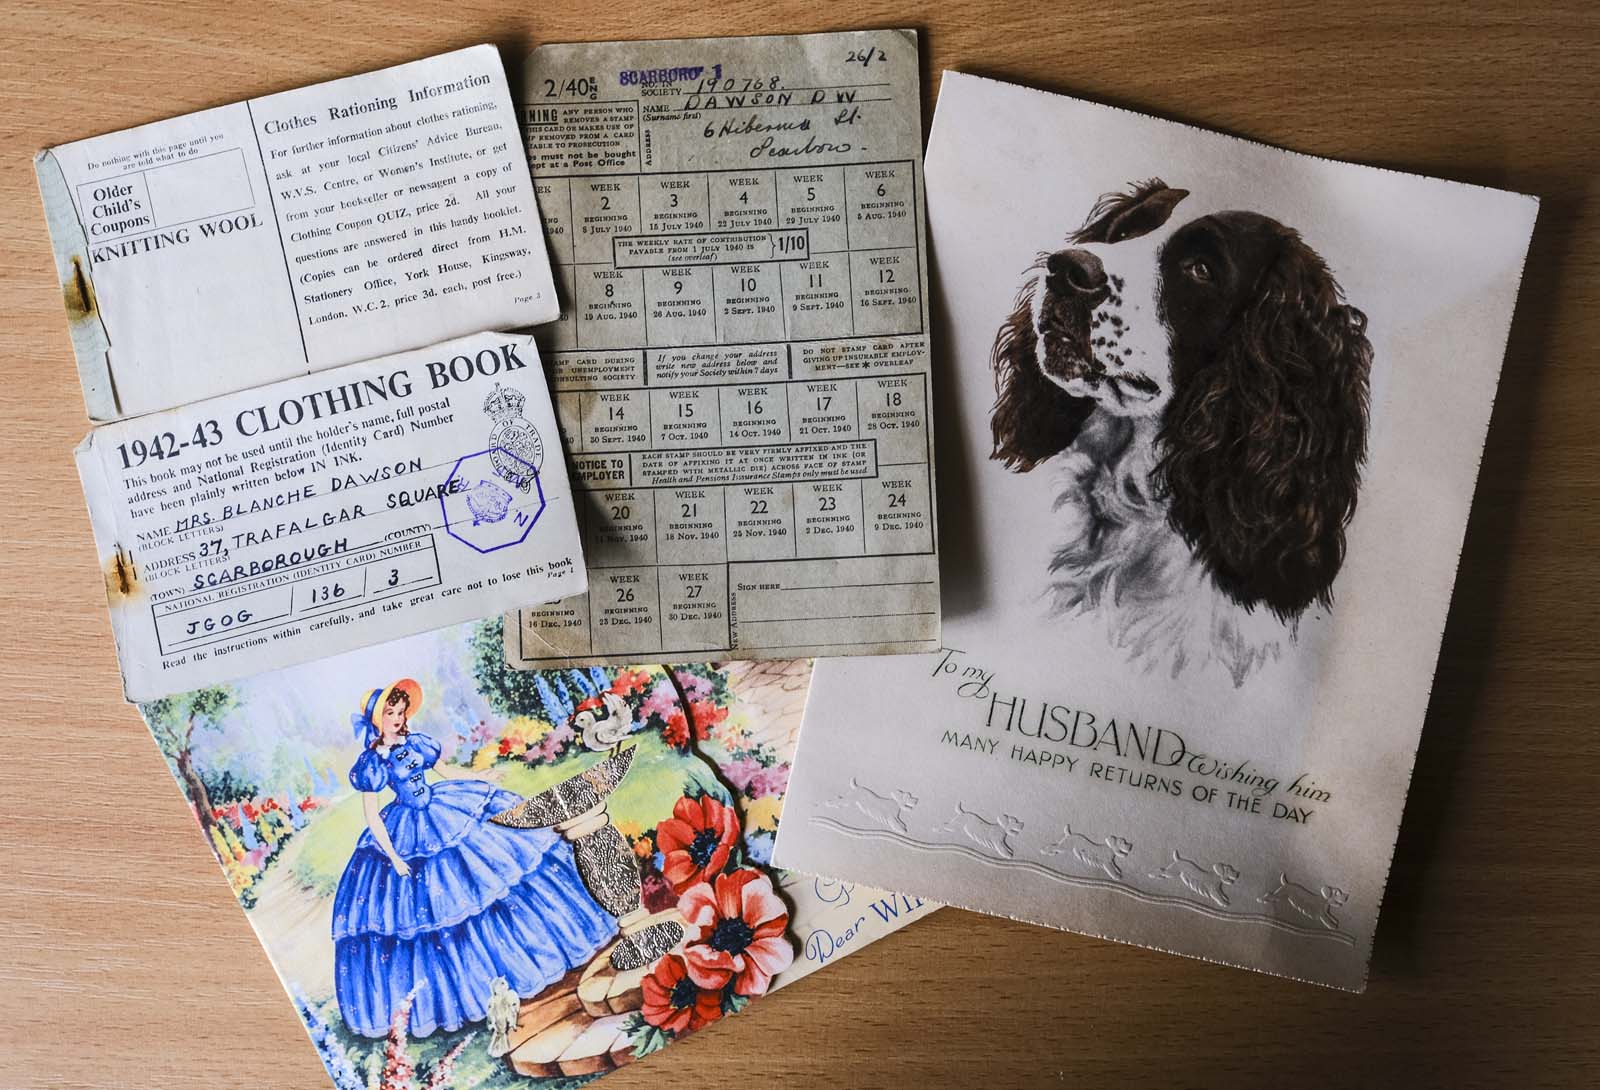 assorted handwritten letters and postcards